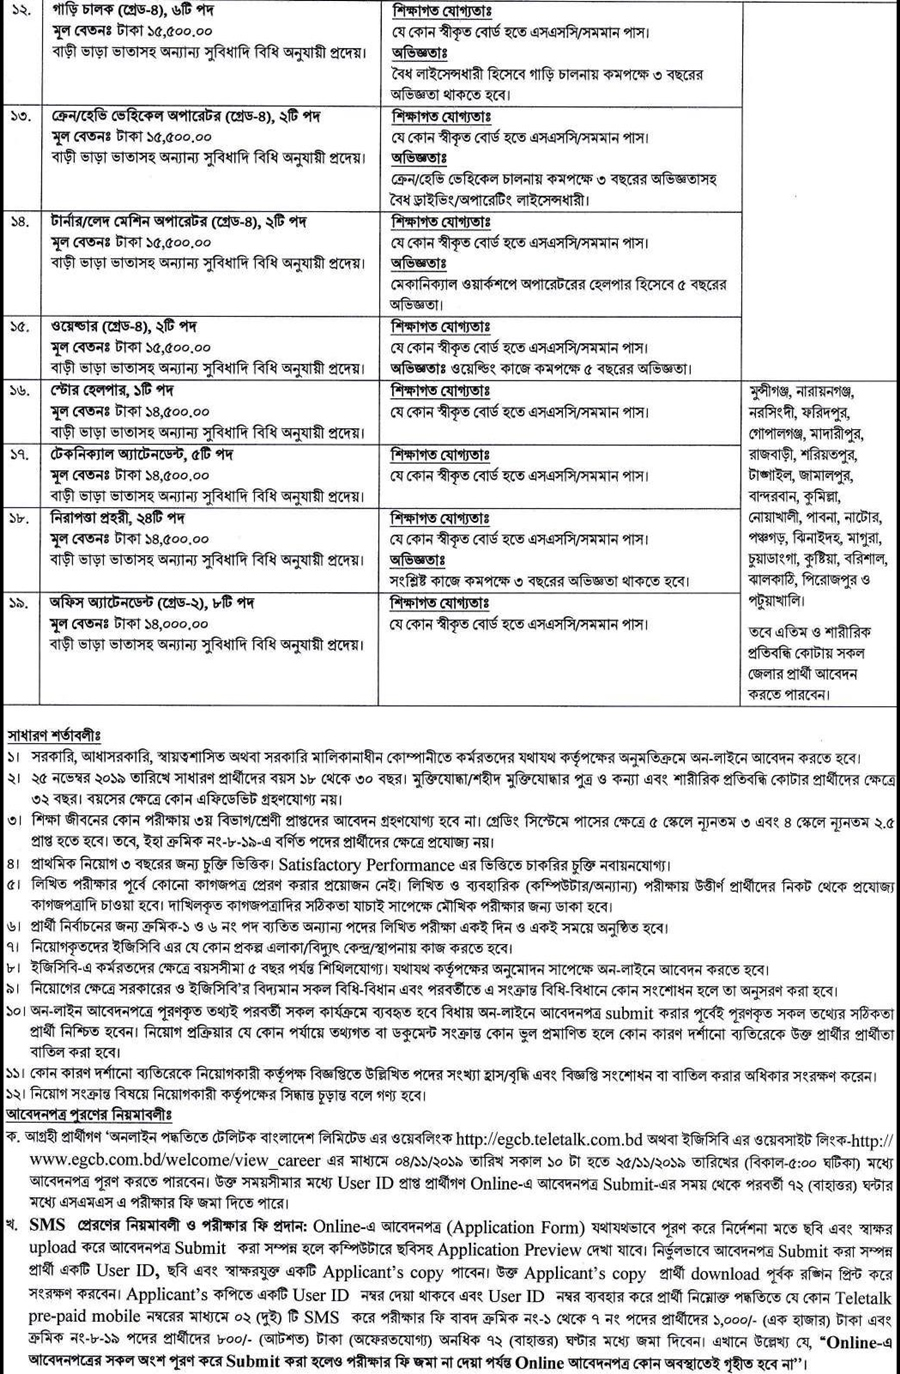 Electricity Generation Company of Bangladesh Limited(EGCB) Job Circular 2019